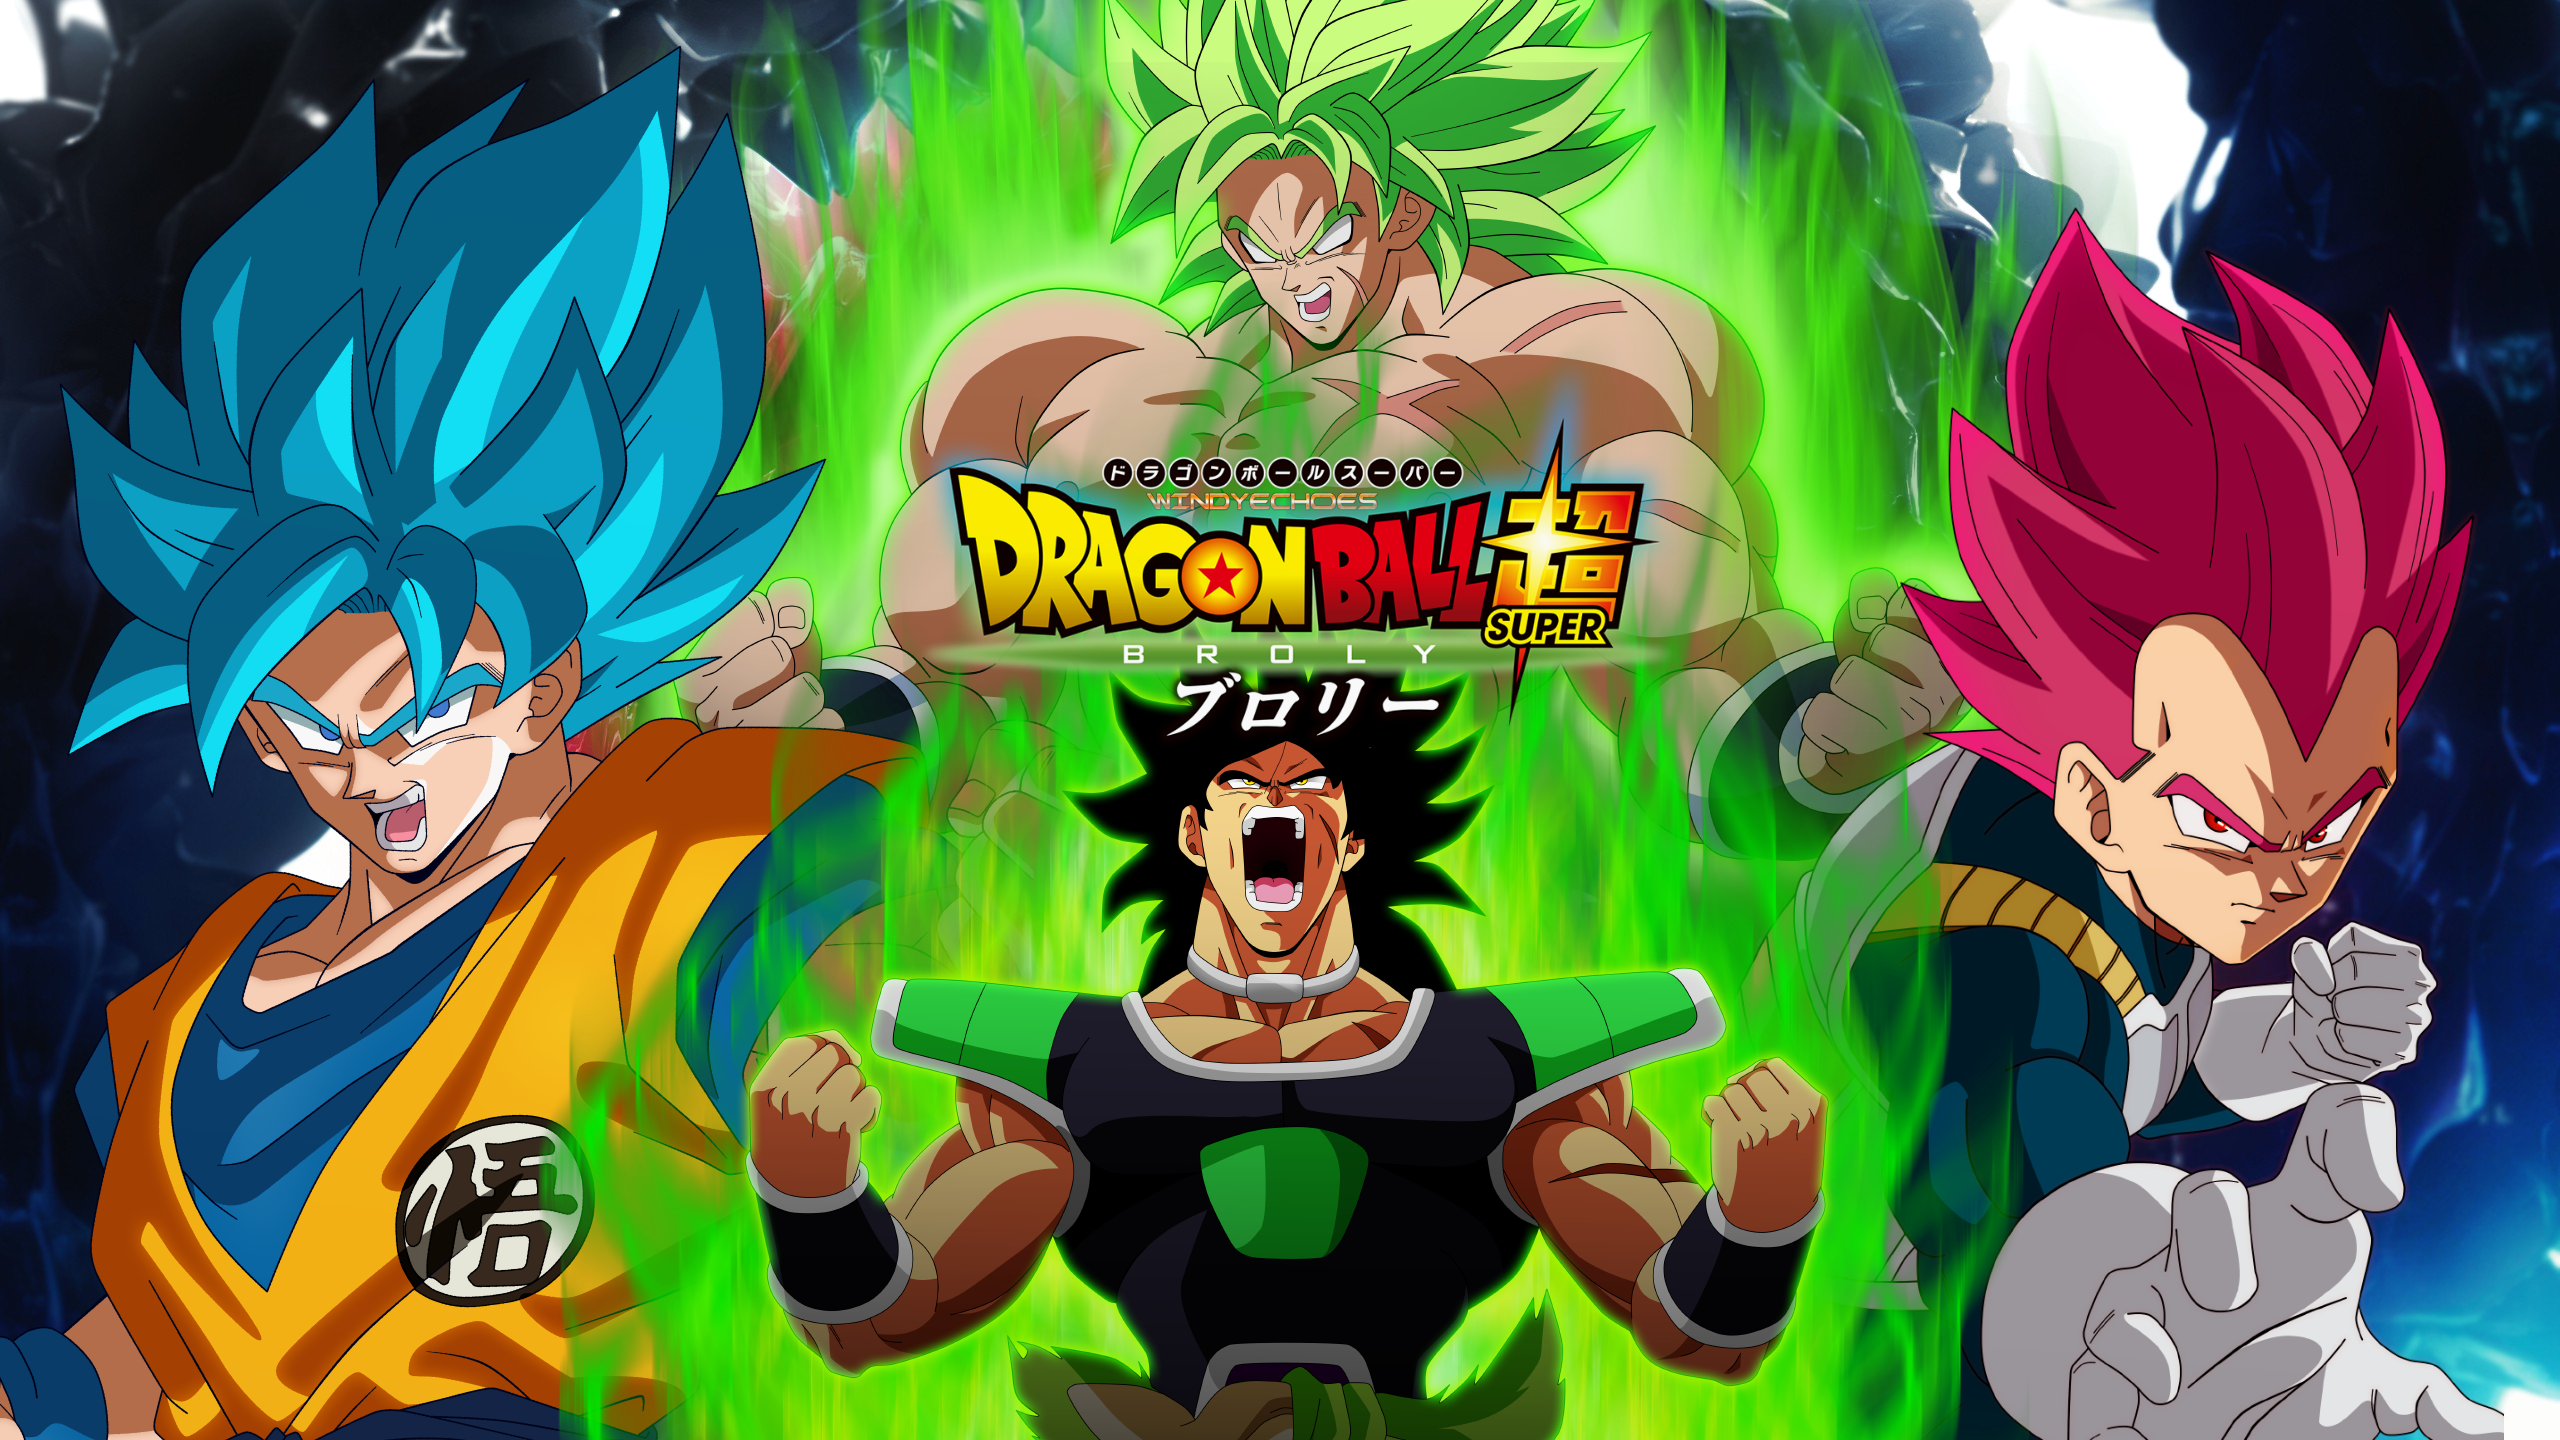 Dragon Ball Super Broly Wallpaper 2018 2019 By Windyechoes On Deviantart